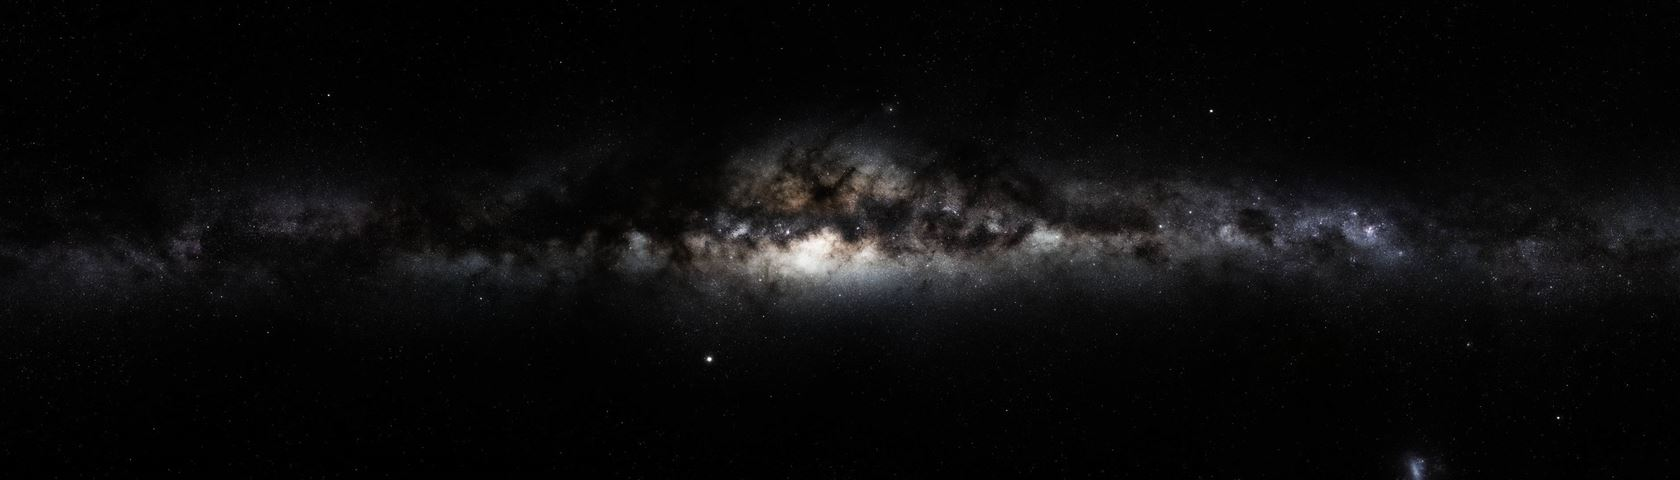 Space PanoRama